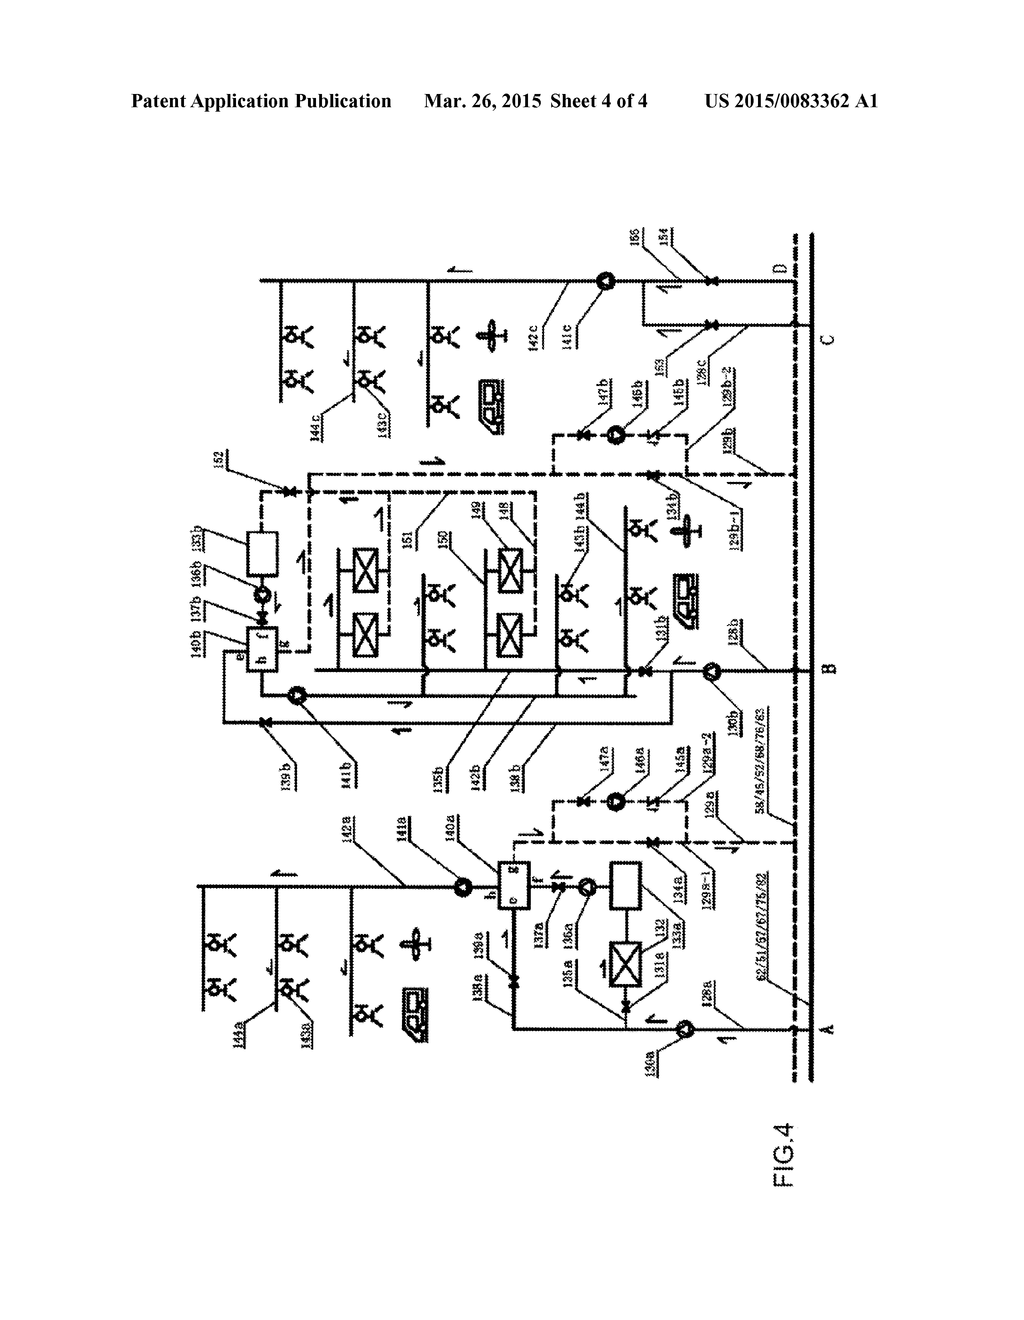 hight resolution of district public water supply pipe network system compatible for source side water for ground source heat pump system and reclaimed water diagram